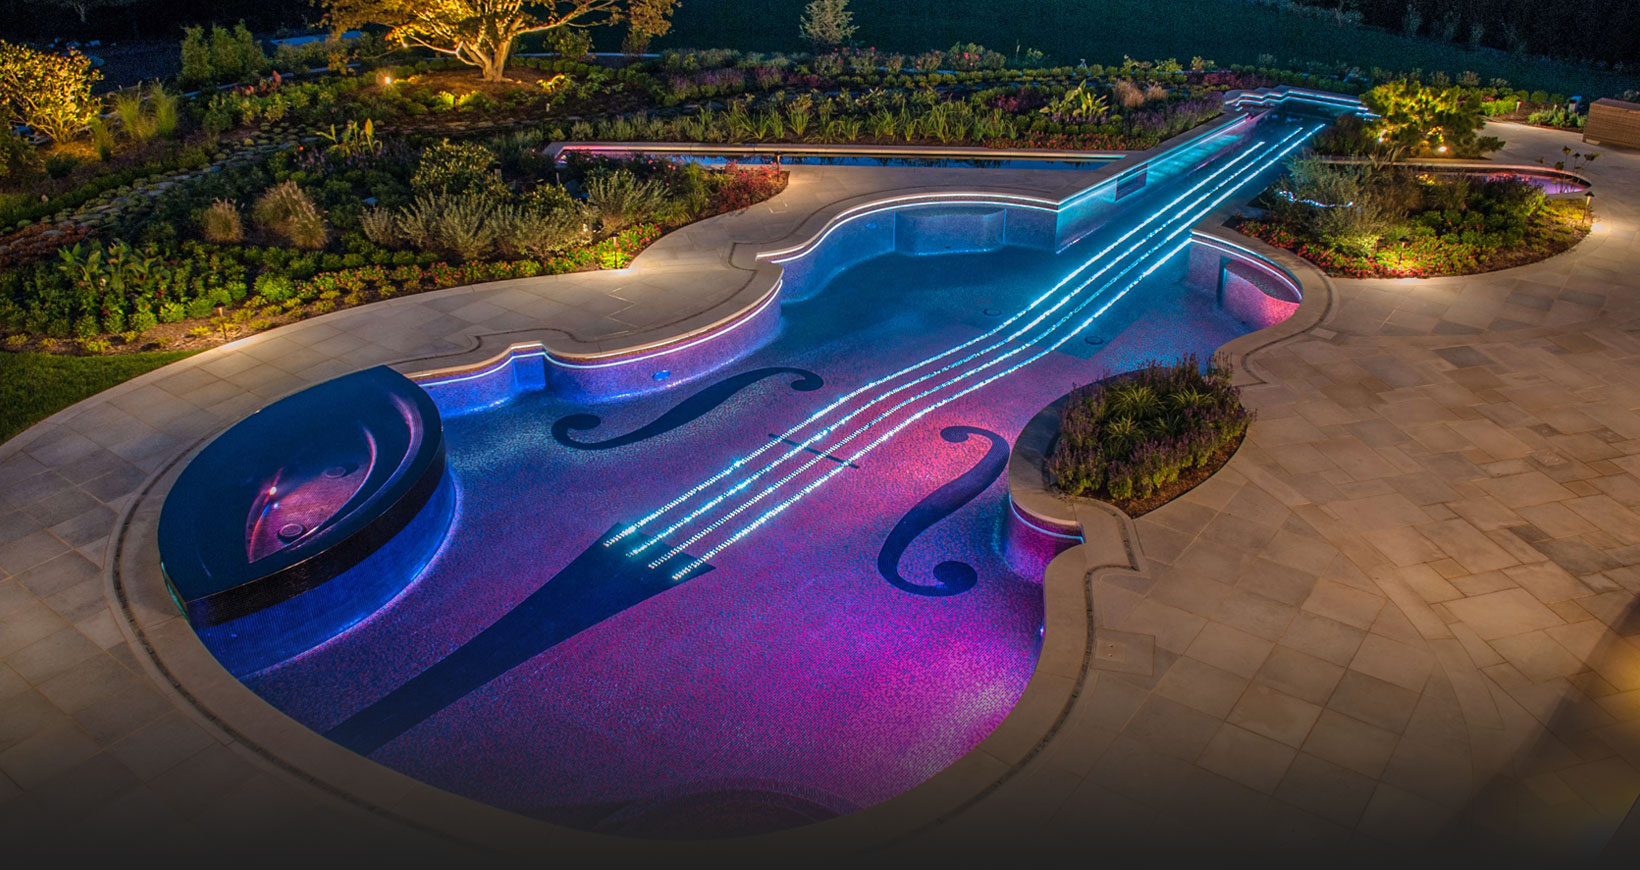 Cello Swimming Pool Things Positive Or Not